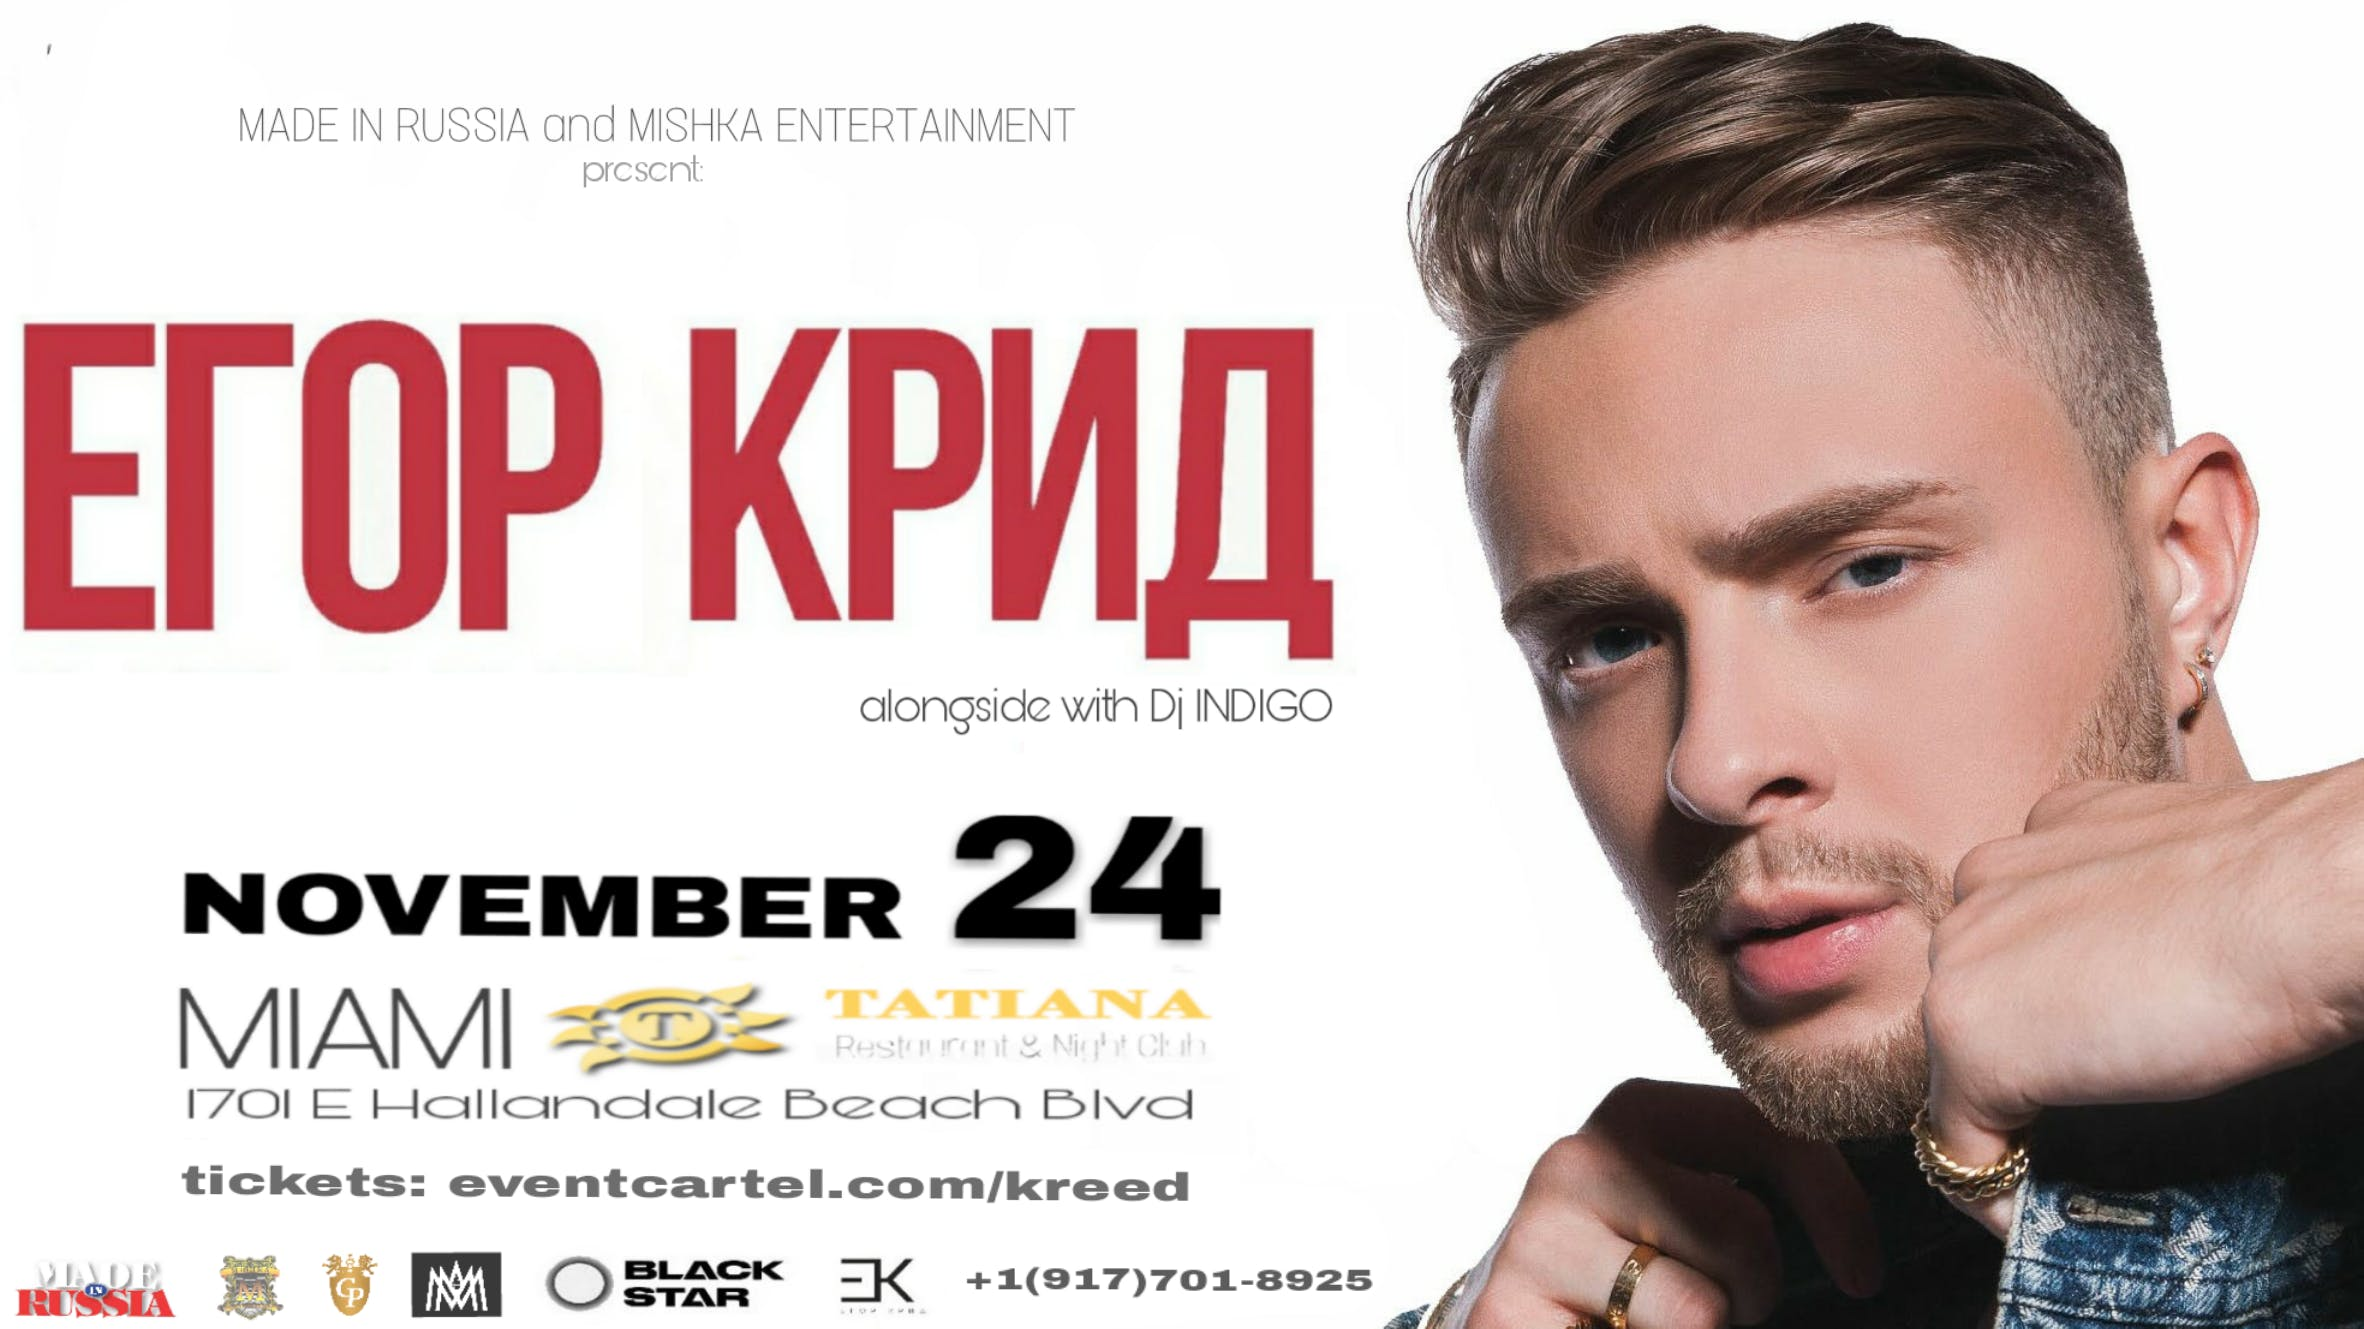 Saturday November 24 #1 Singer in Russia EGOR